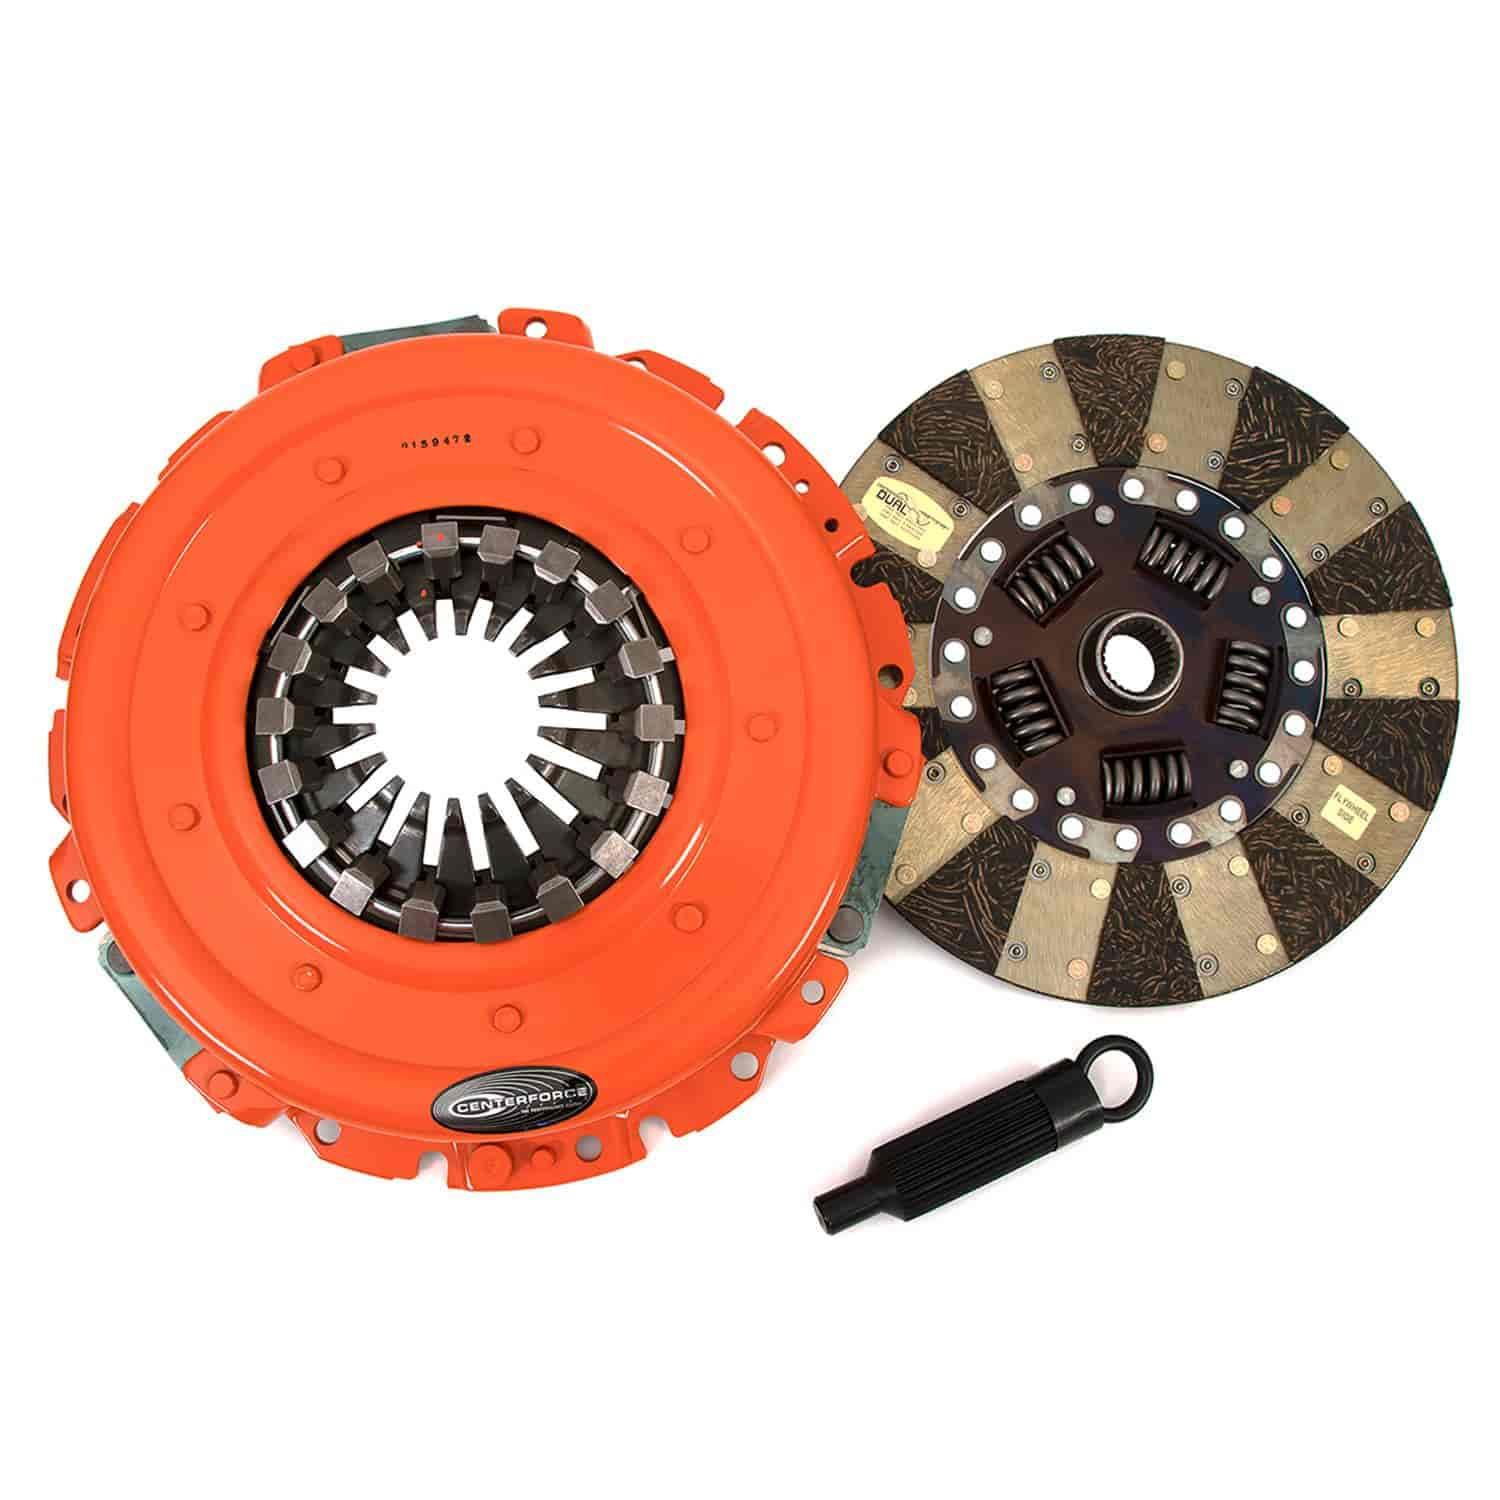 Centerforce DF148552 - Centerforce Dual Friction Clutches